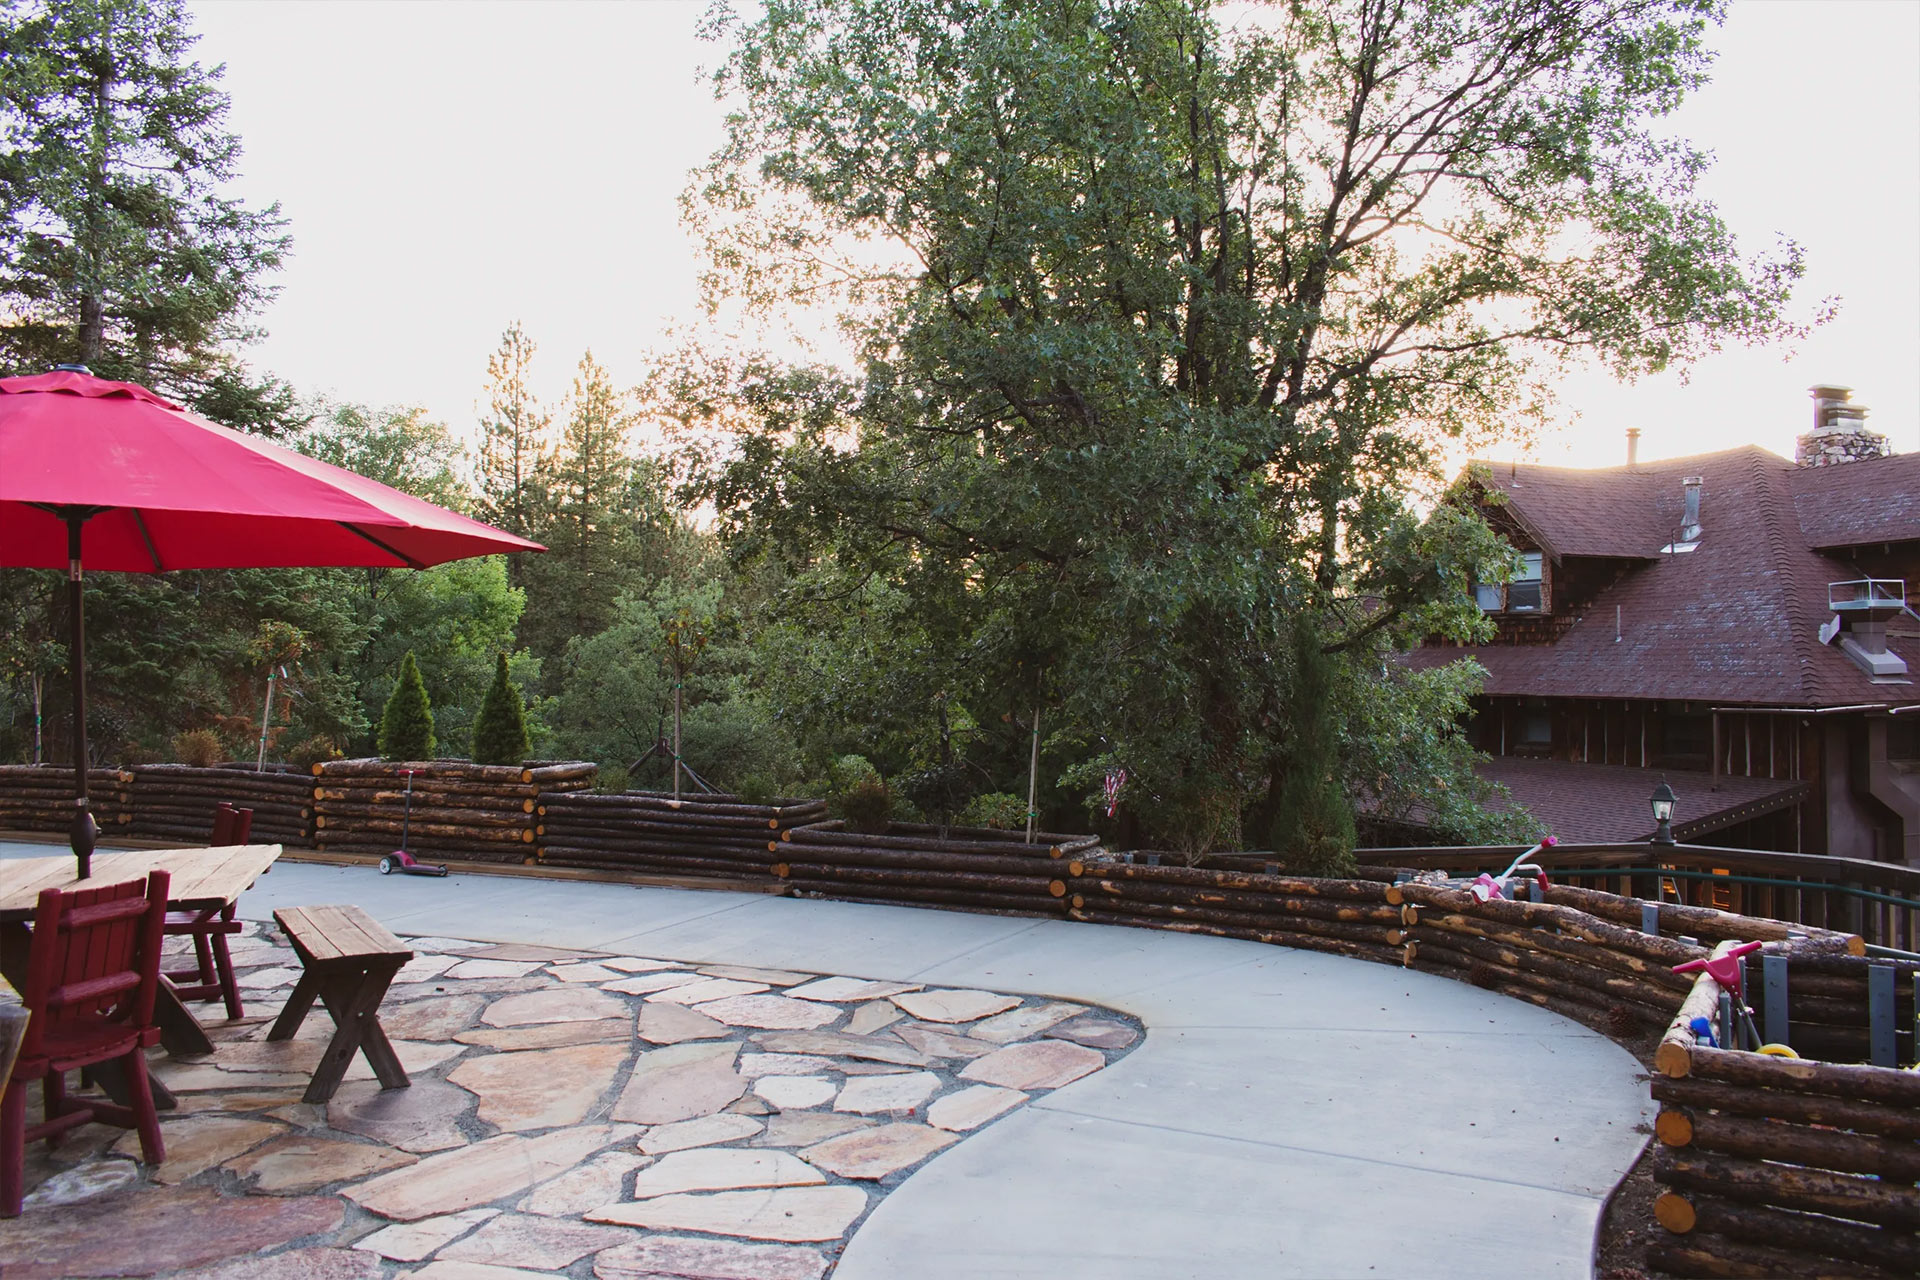 Red sunshade with a view or Big Bear Lake Forest